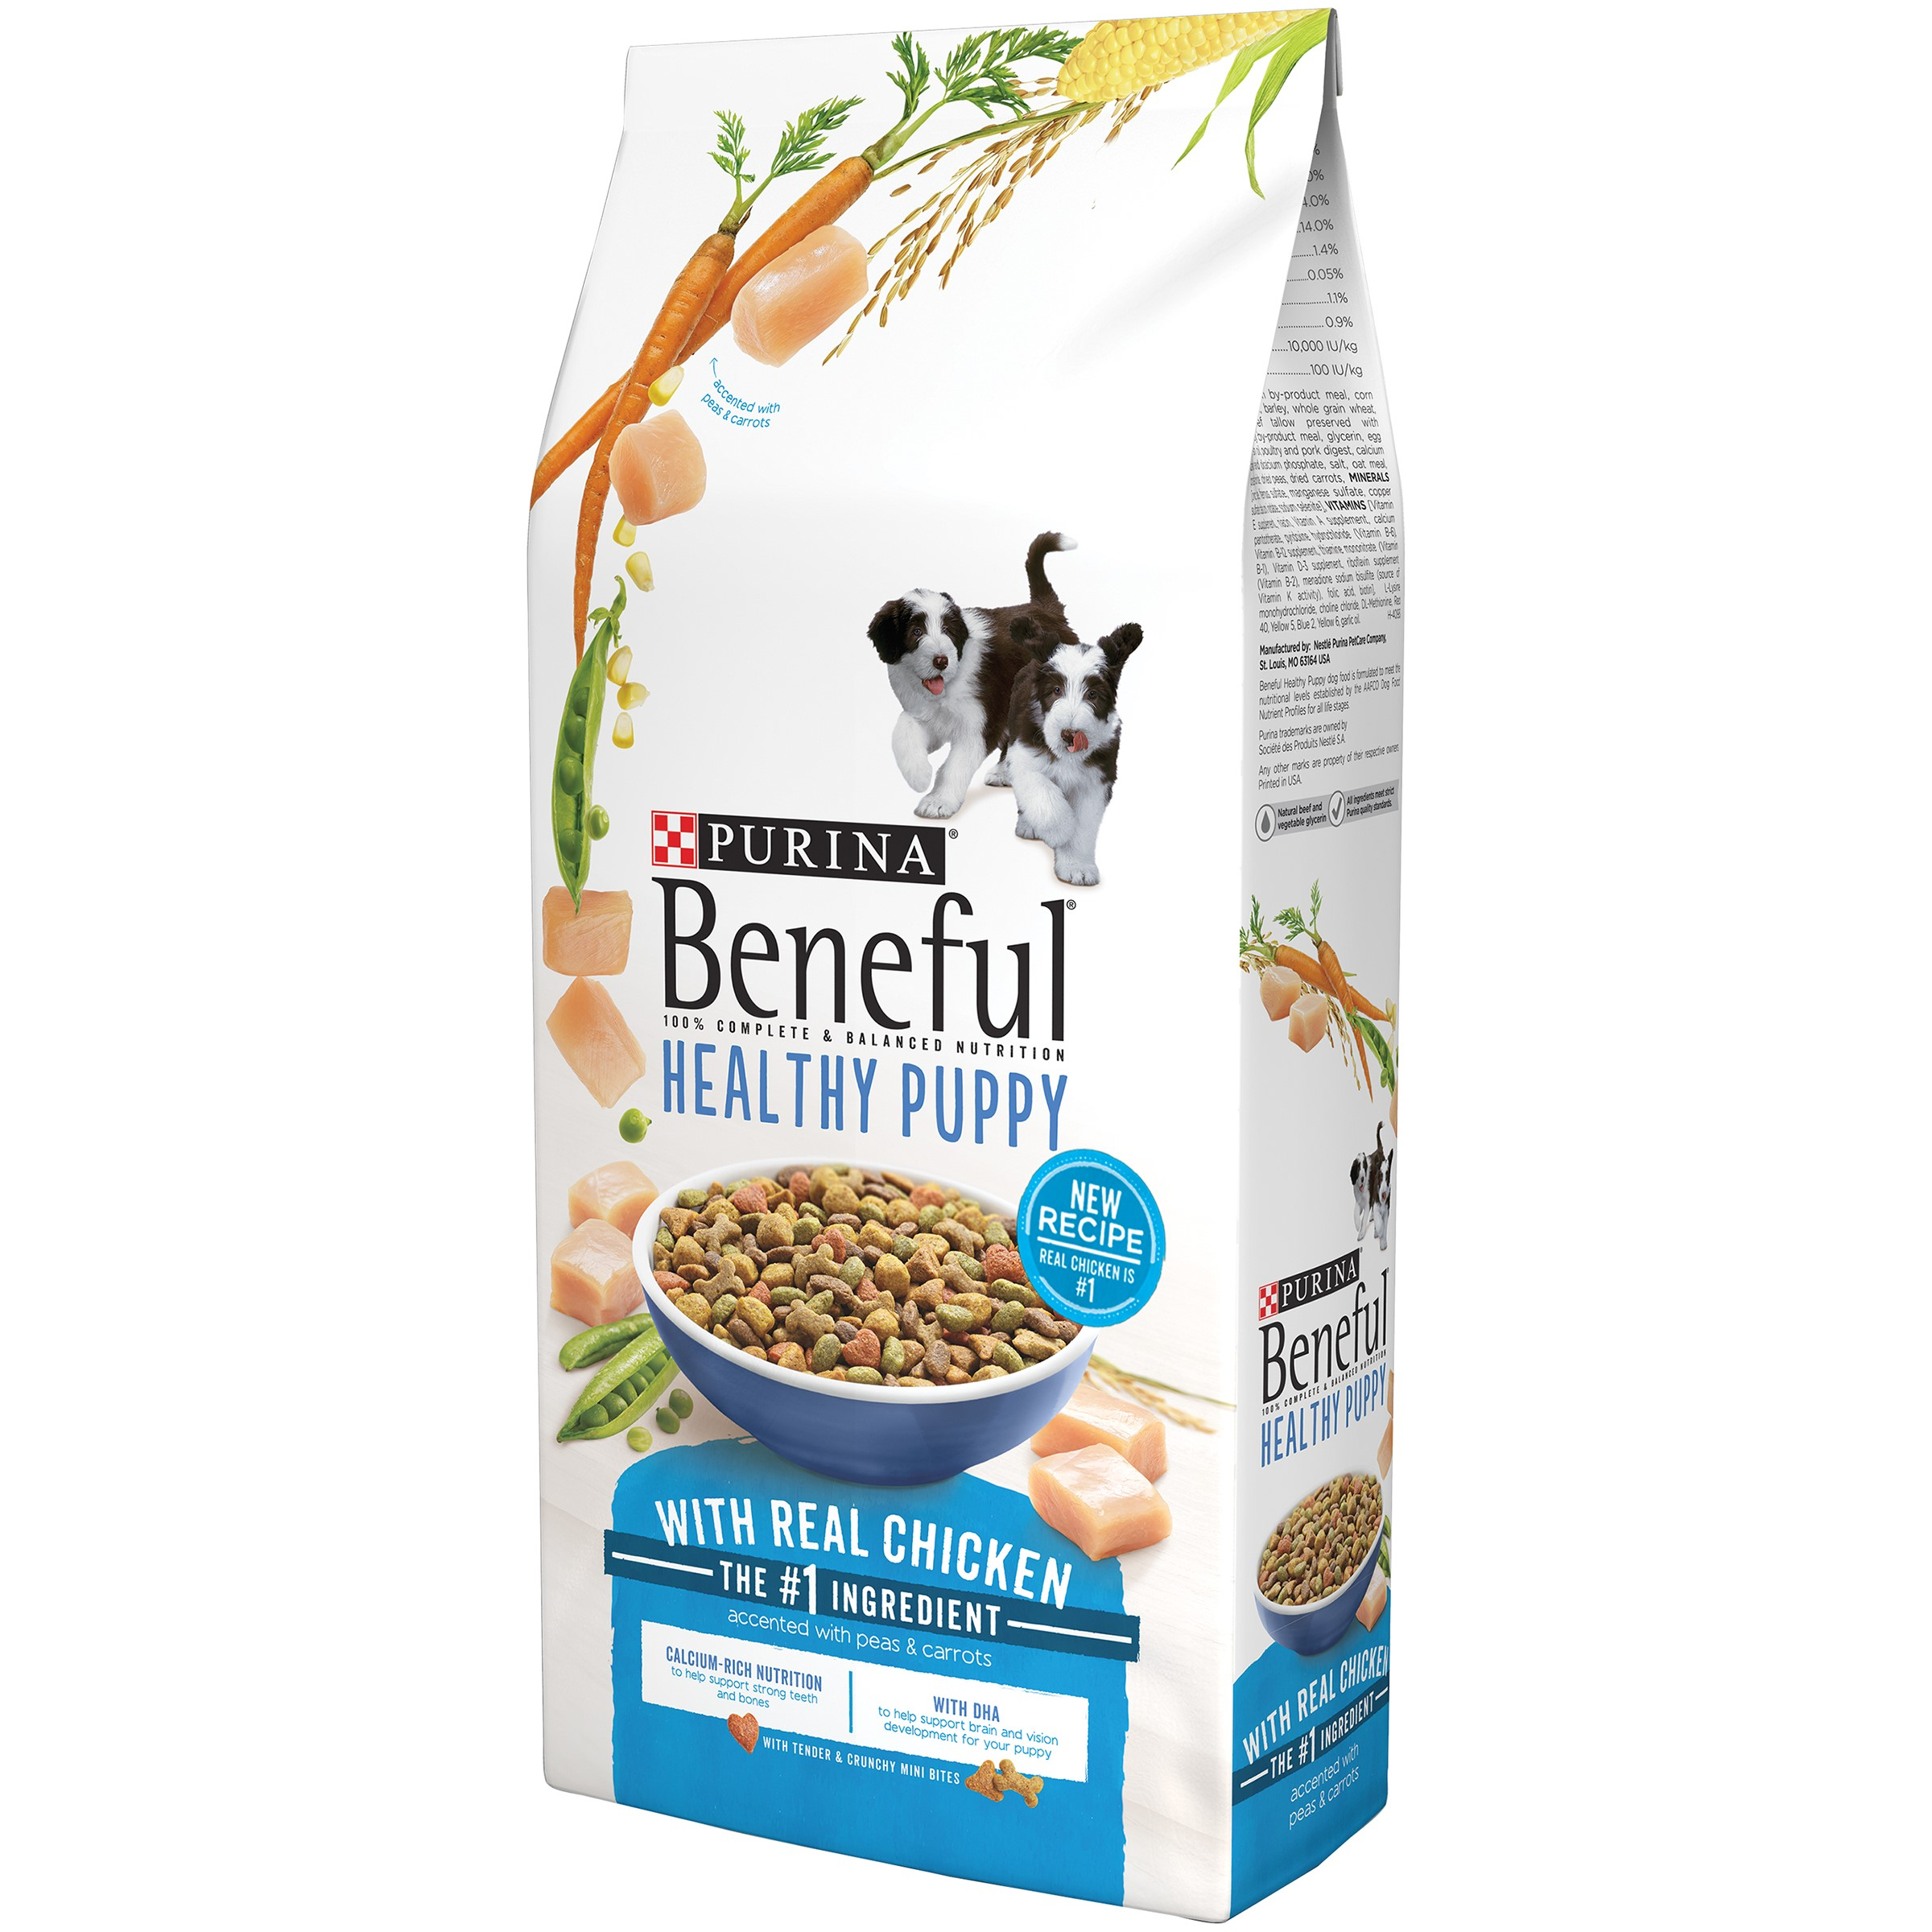 Beneful Healthy Puppy Chicken with Peas & Carrots Puppy Dry Dog Food, 3.5 Lb